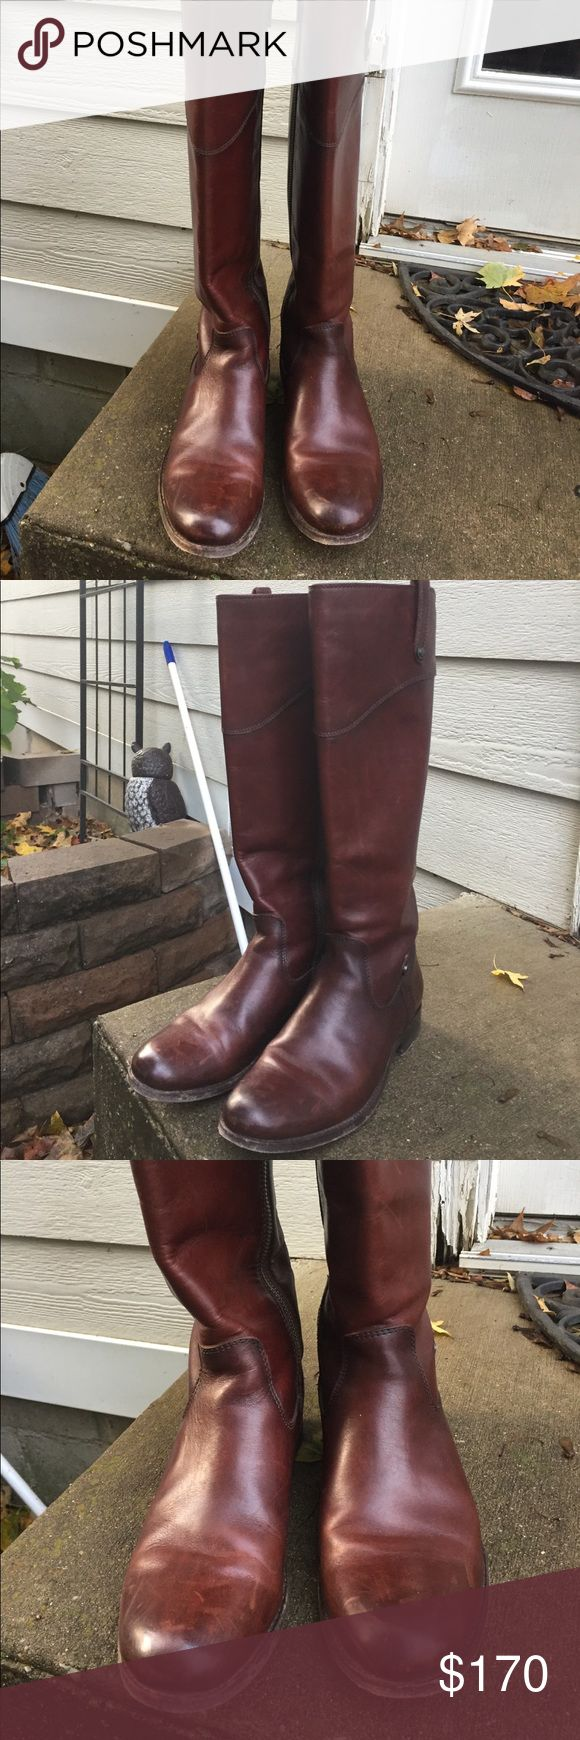 Brown Frye riding boots 7.5 Beautiful brown Frye riding boots size 7.5. Hardly worn. Imperfections are visible in pictures. Authentic. Frye Shoes